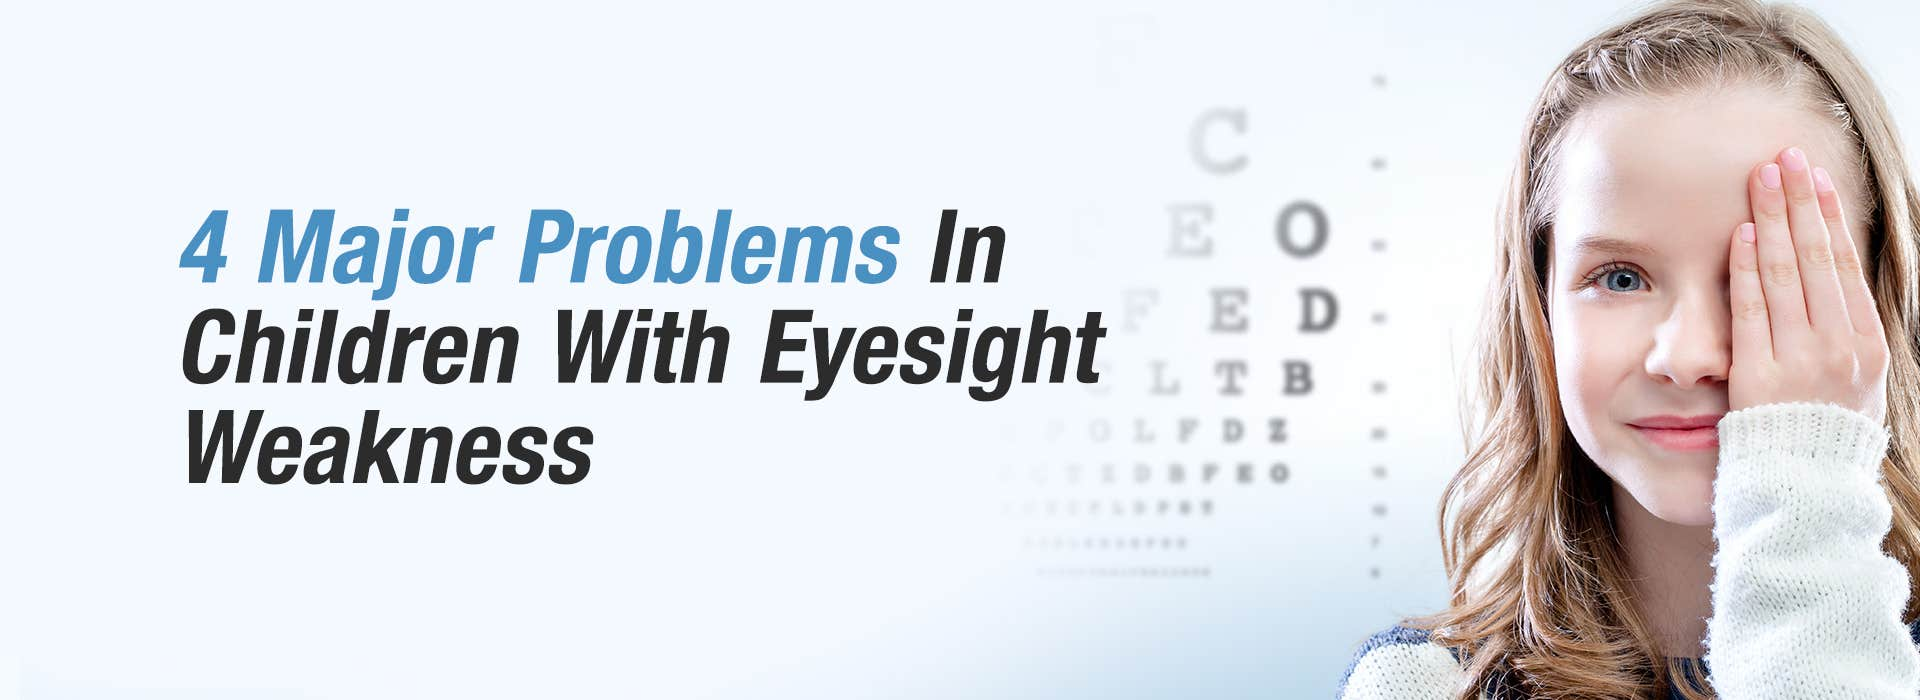 4 Major Problems In Children With Eyesight Weakness